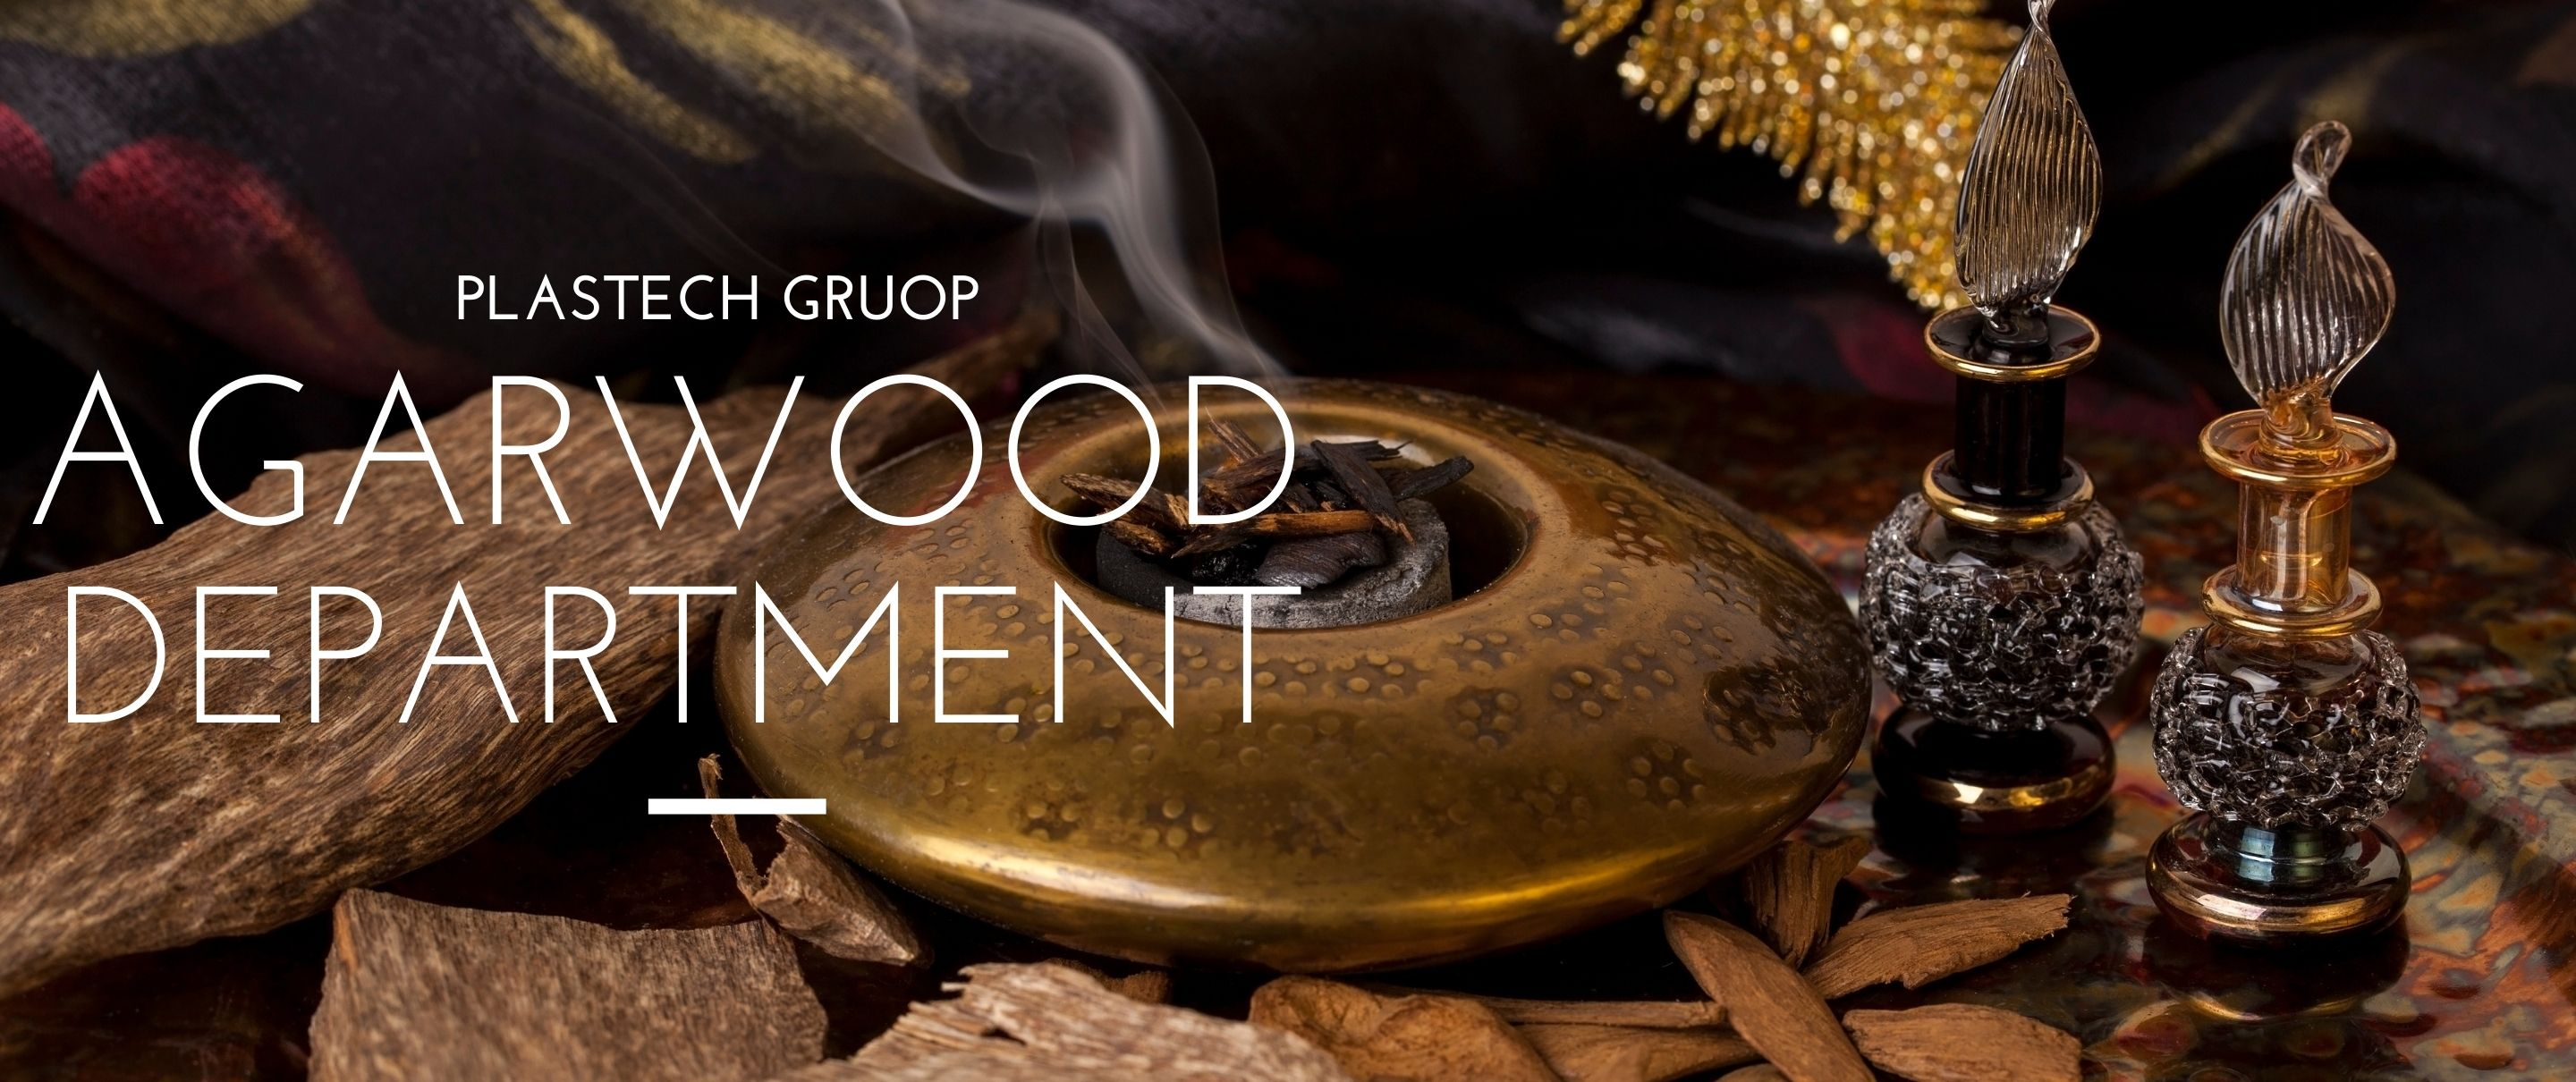 PLASTECH GROUP - AGARWOOD DEPARTMENT